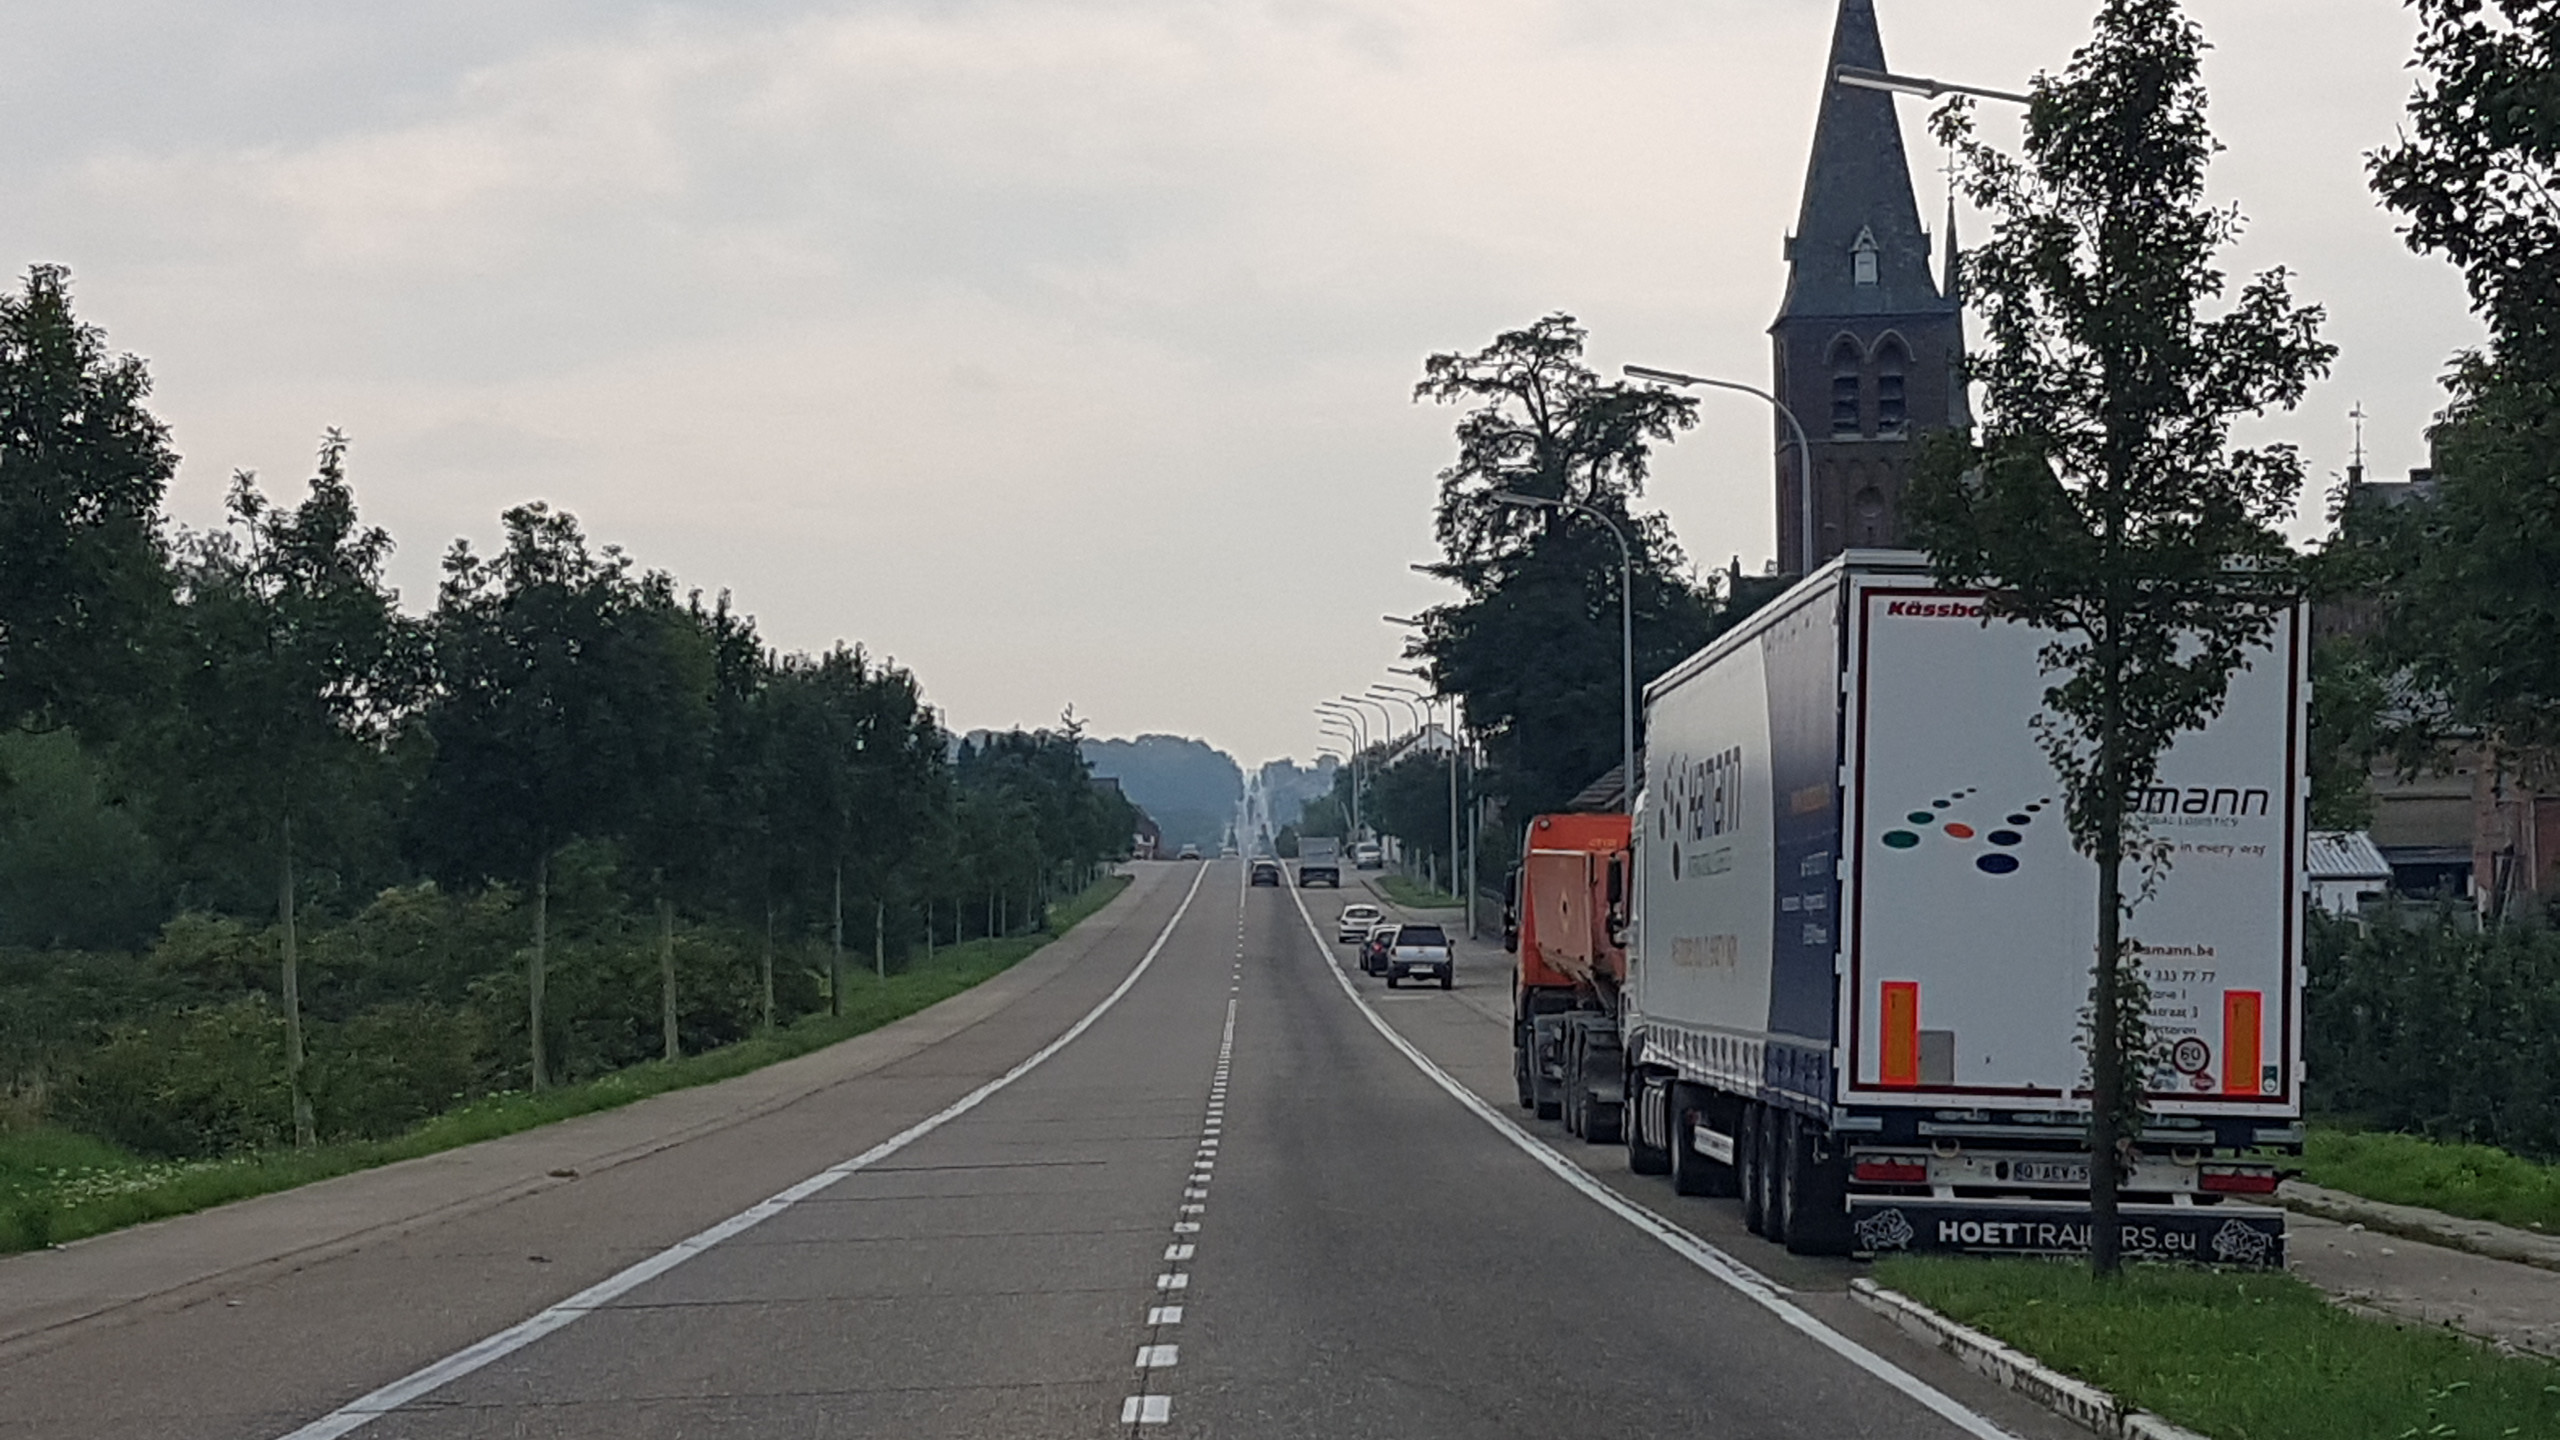 The road to Aachen